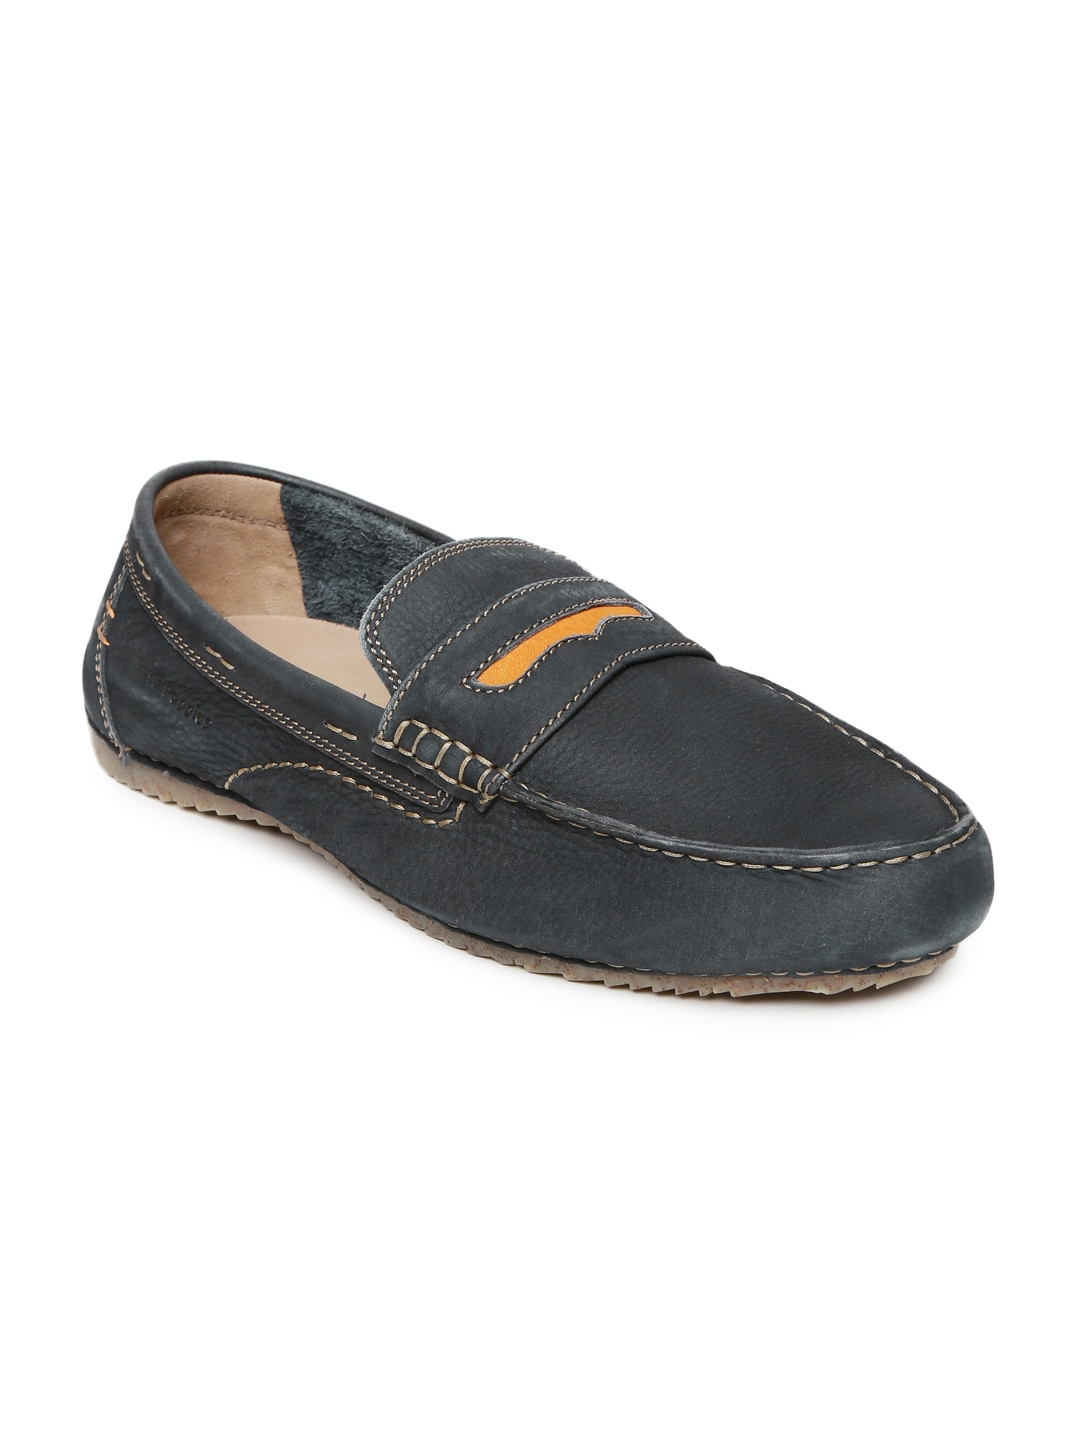 Hush Puppies Men Blue Loafers image